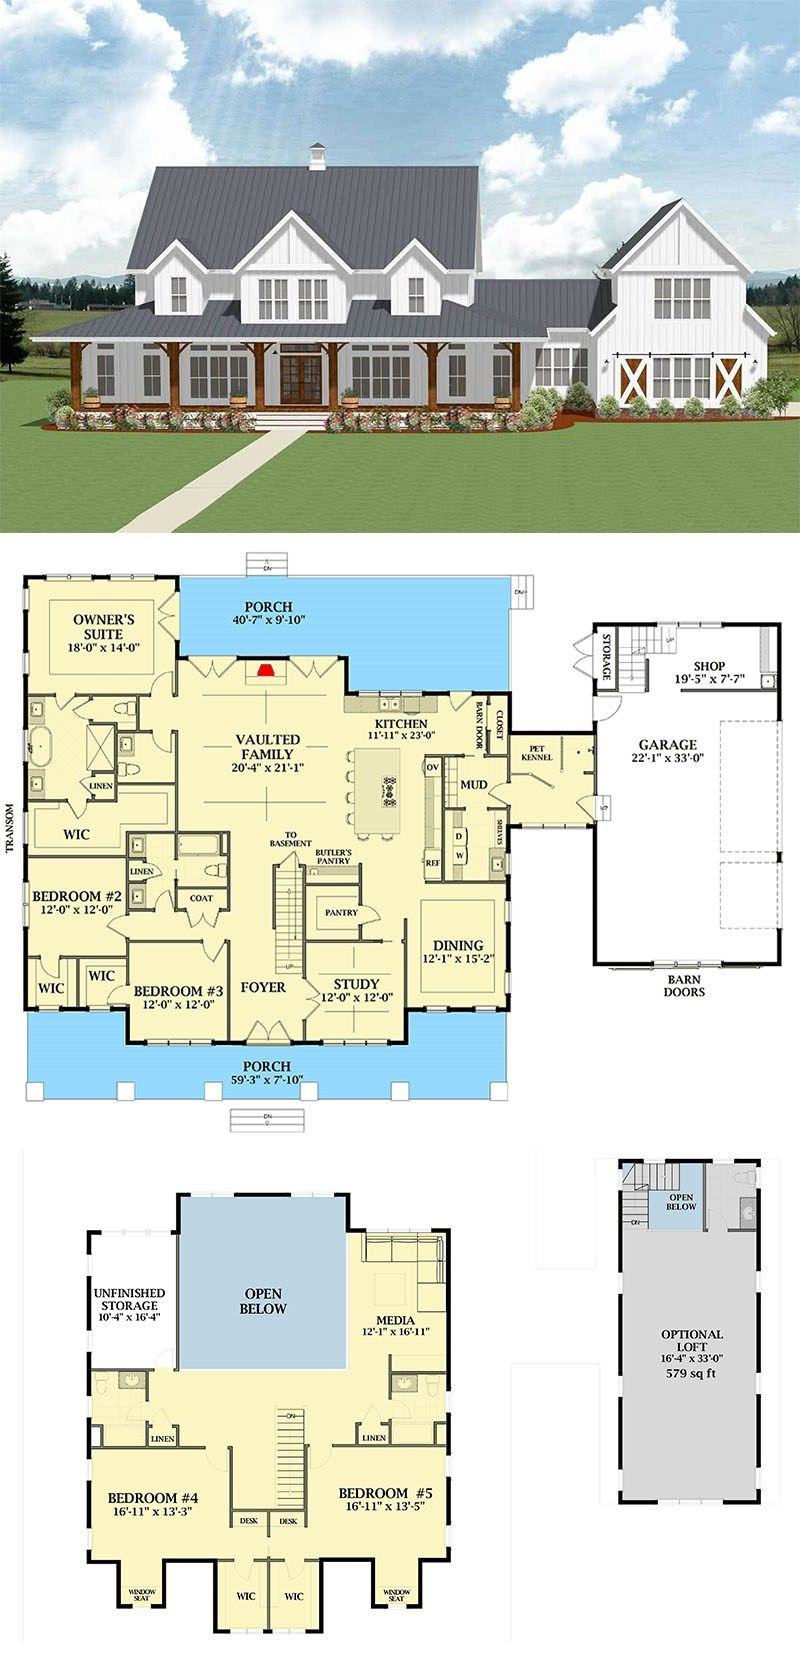 7 Most Popular Farmhouse Plans With Pictures Nikki S Plate House Plans Farmhouse House Blueprints Farmhouse Plans